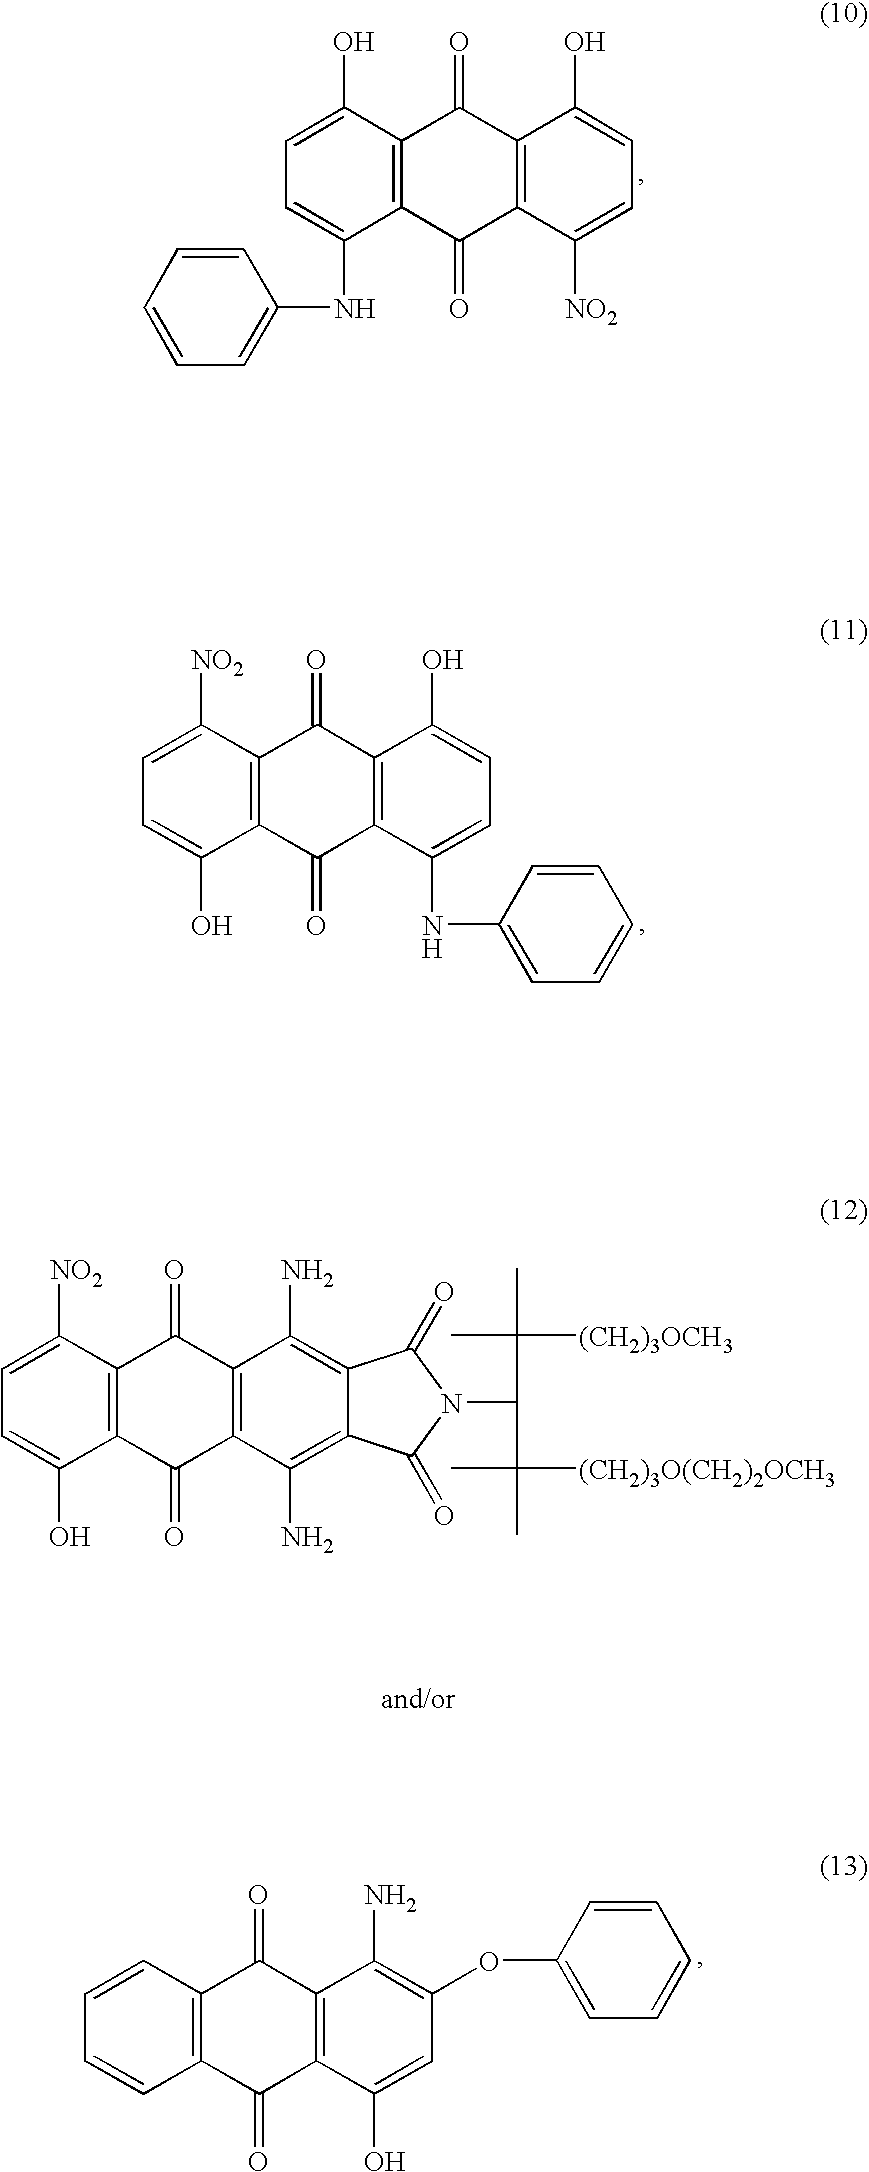 preparation of para red and related azo dyes